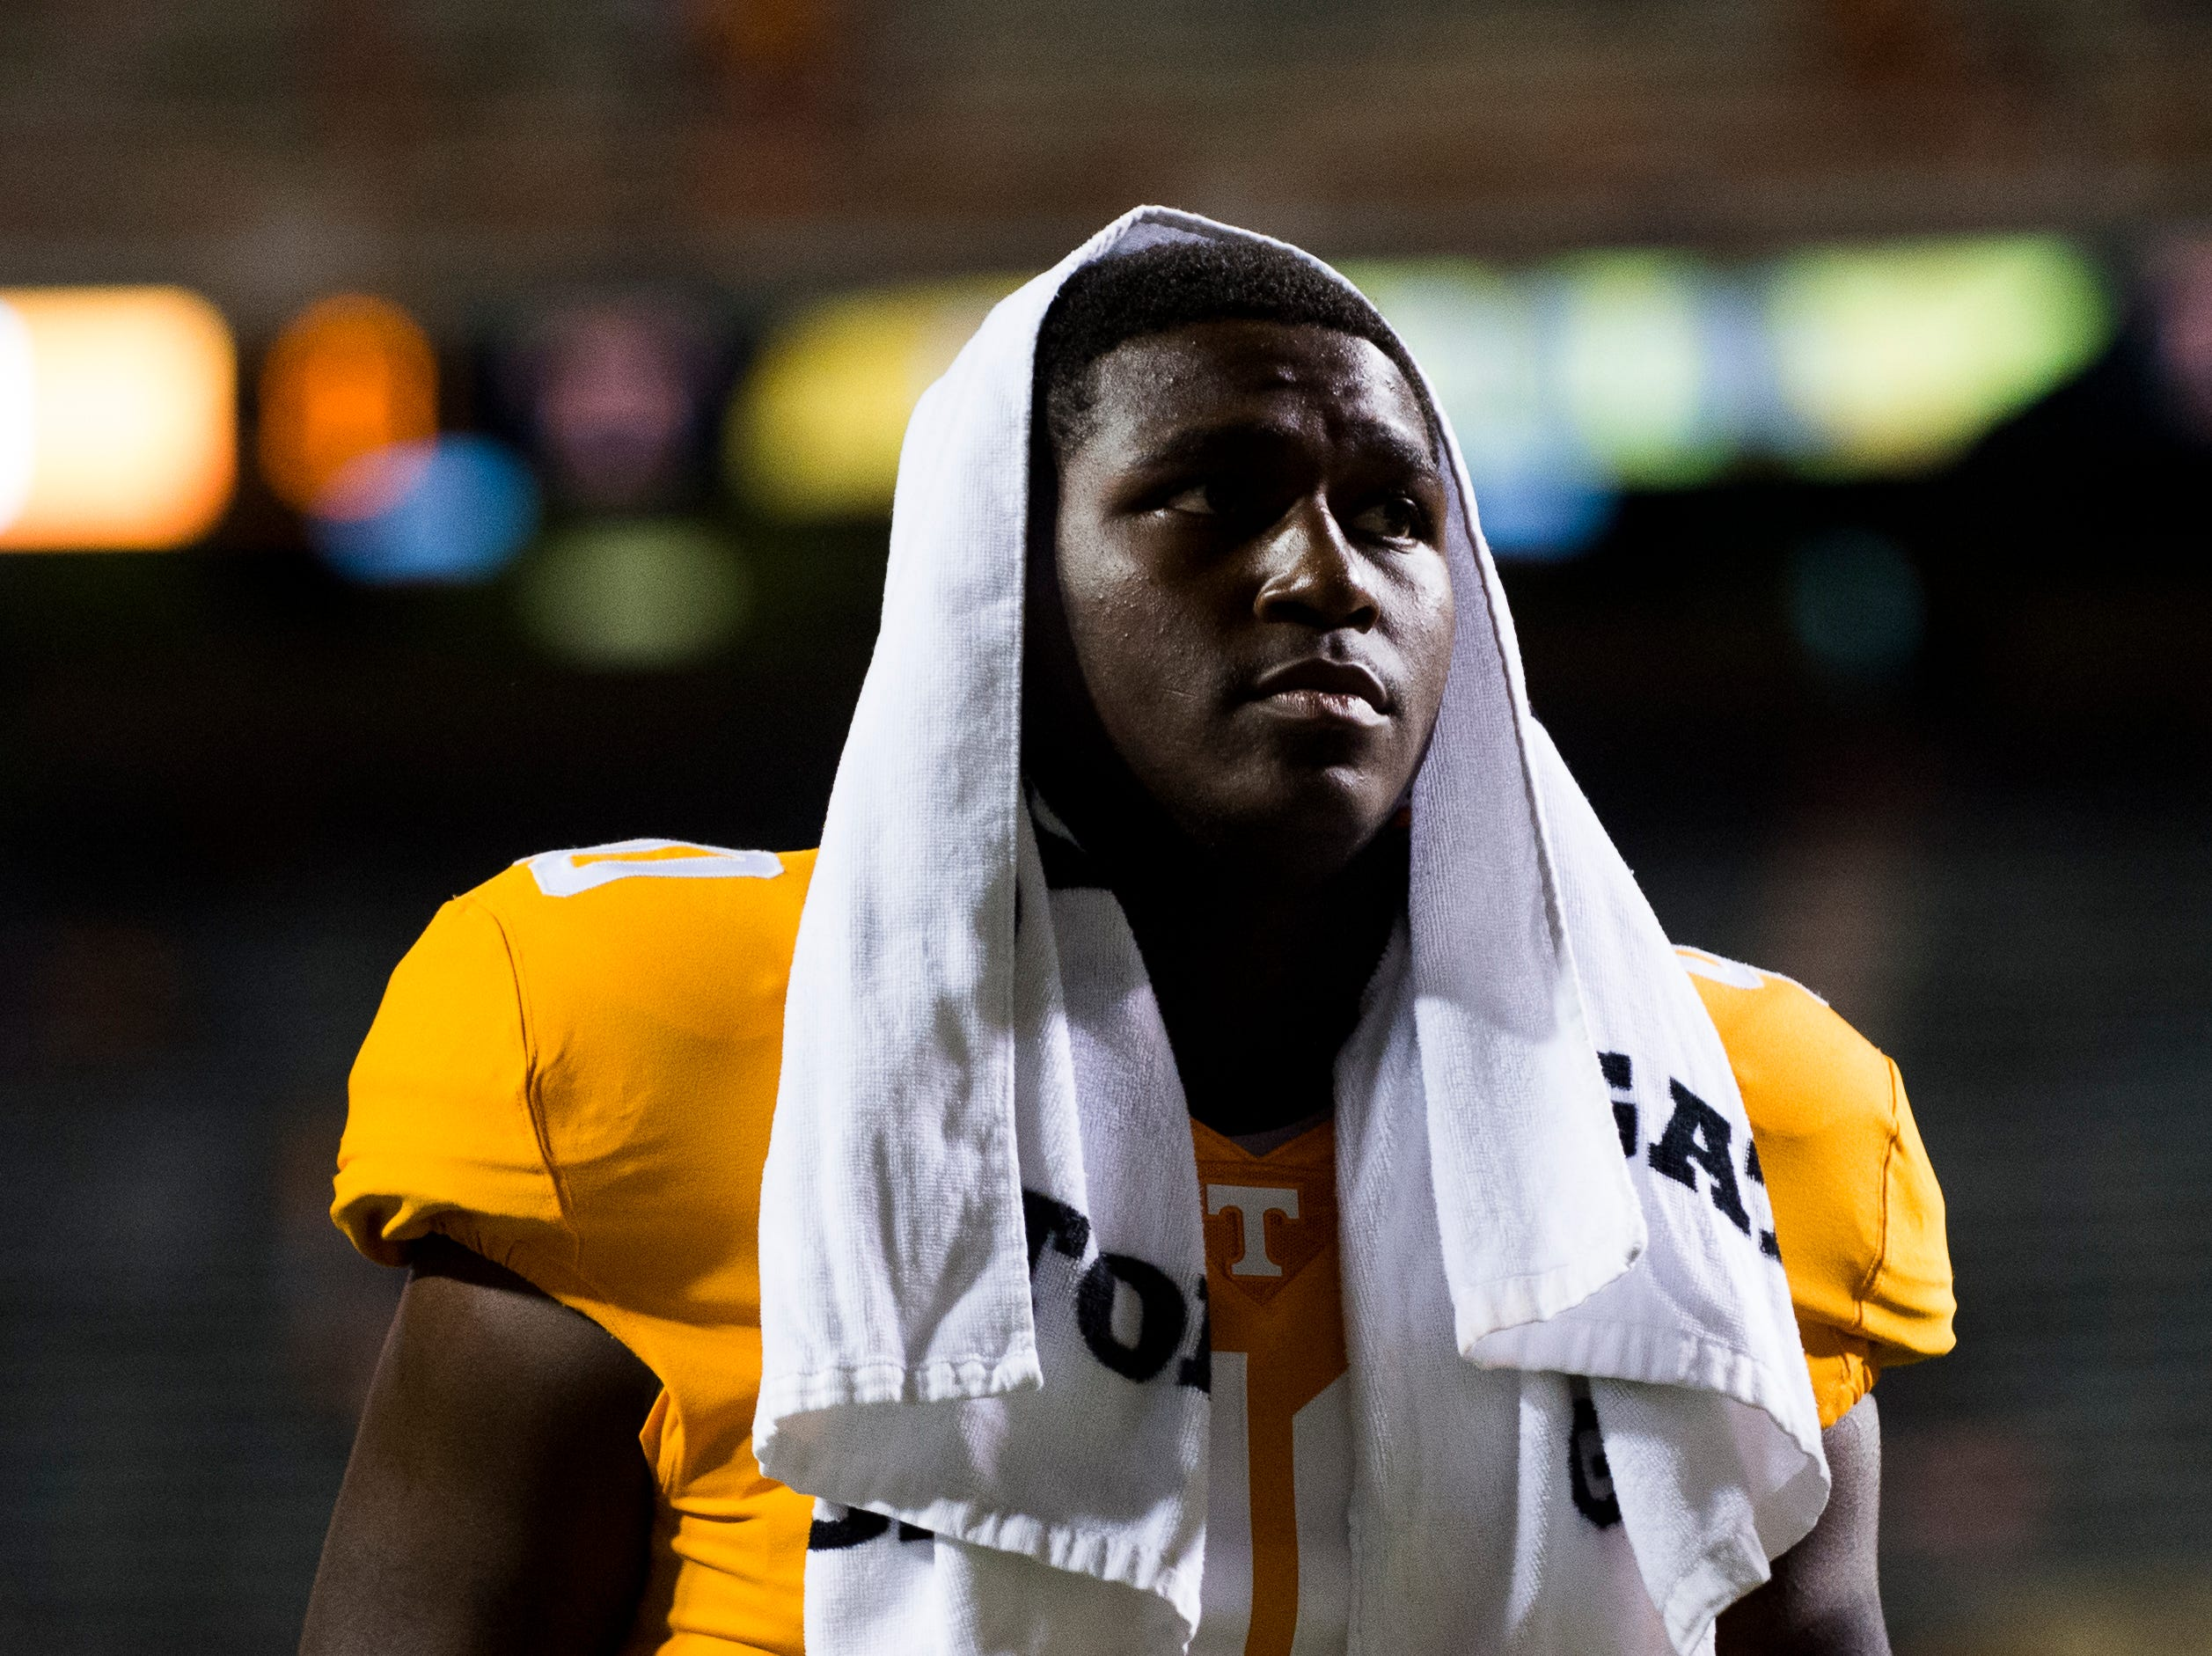 Tennessee linebacker JJ Peterson (40) walks off the field during a game between Tennessee and Florida at Neyland Stadium in Knoxville, Tennessee on Saturday, September 22, 2018.